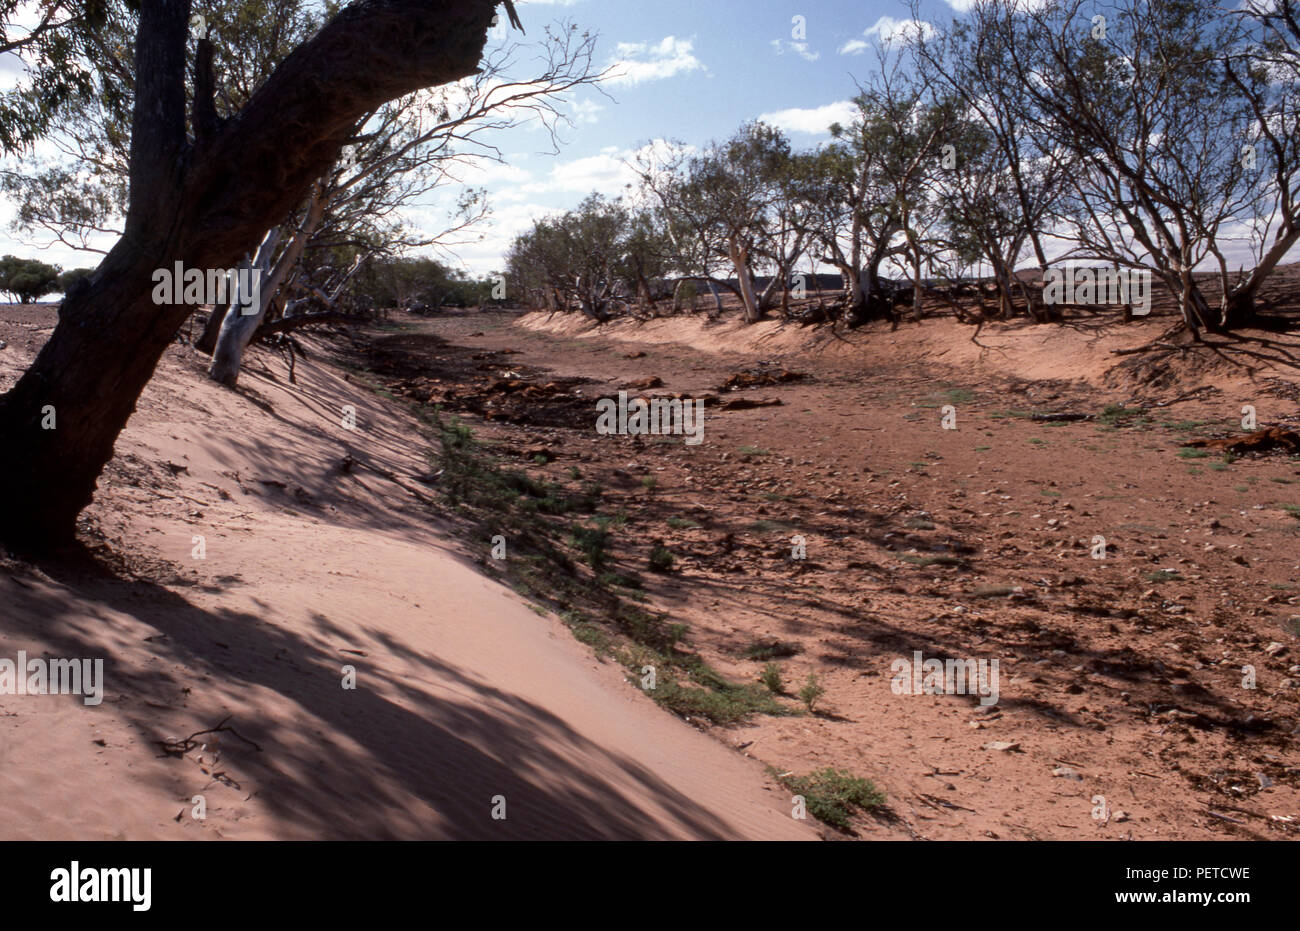 Dry river bed in the Northern Territory and dead livestock owing to severe drought conditions, Australia - Stock Image